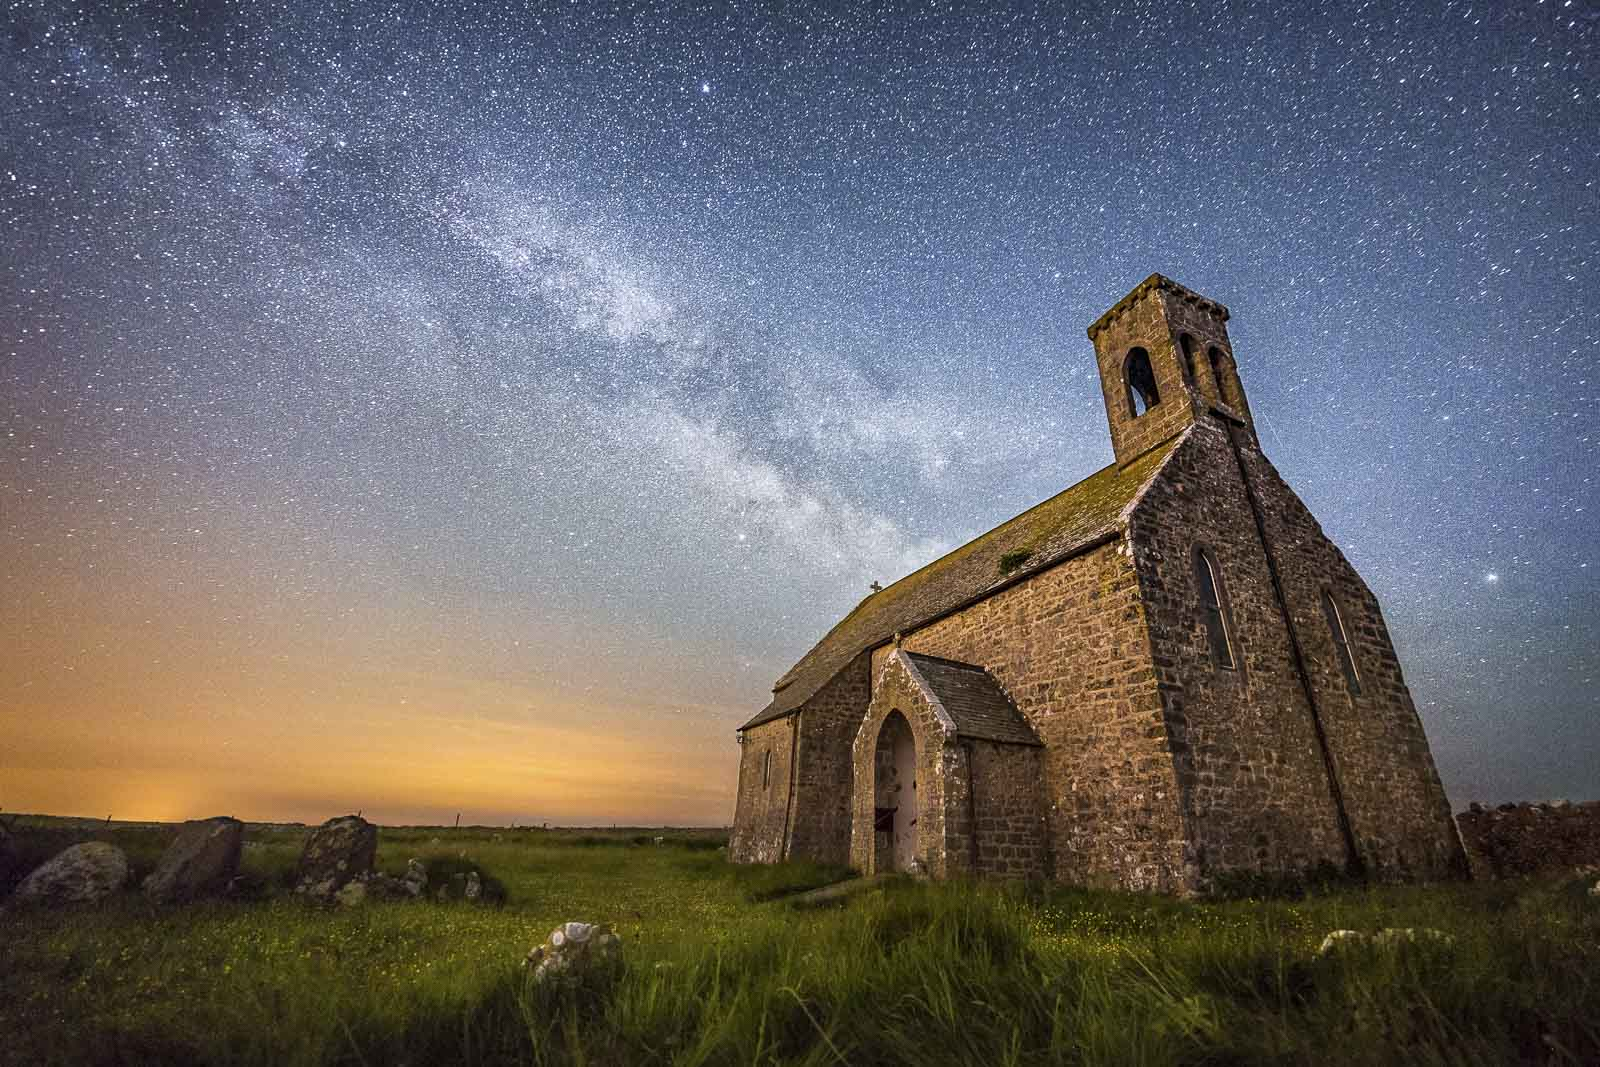 Milky way galaxy above church